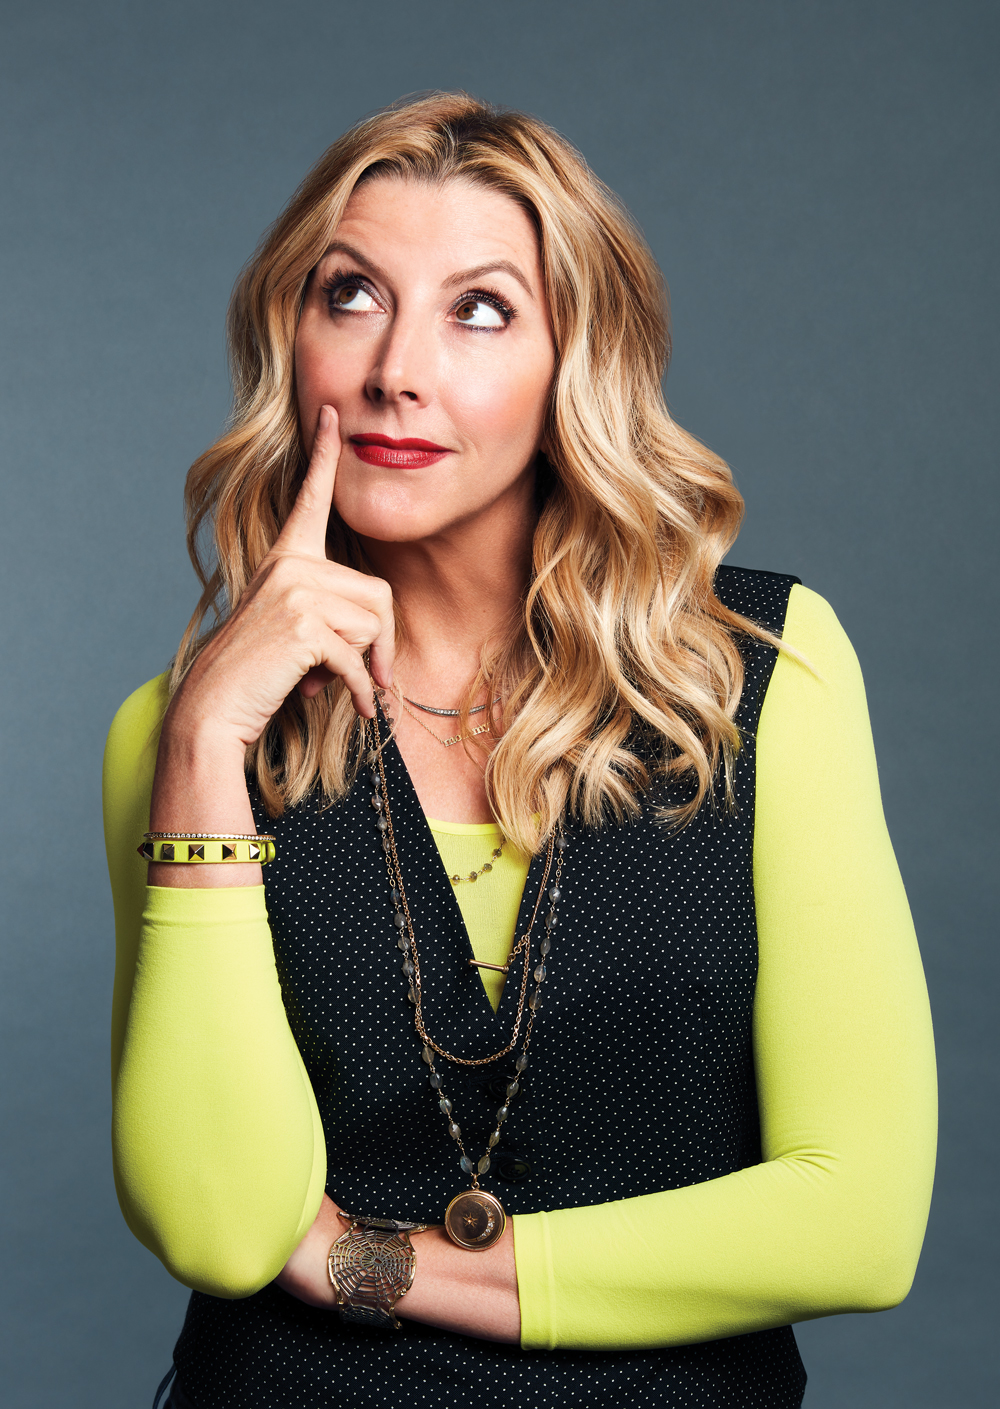 Sara blakely picture 55